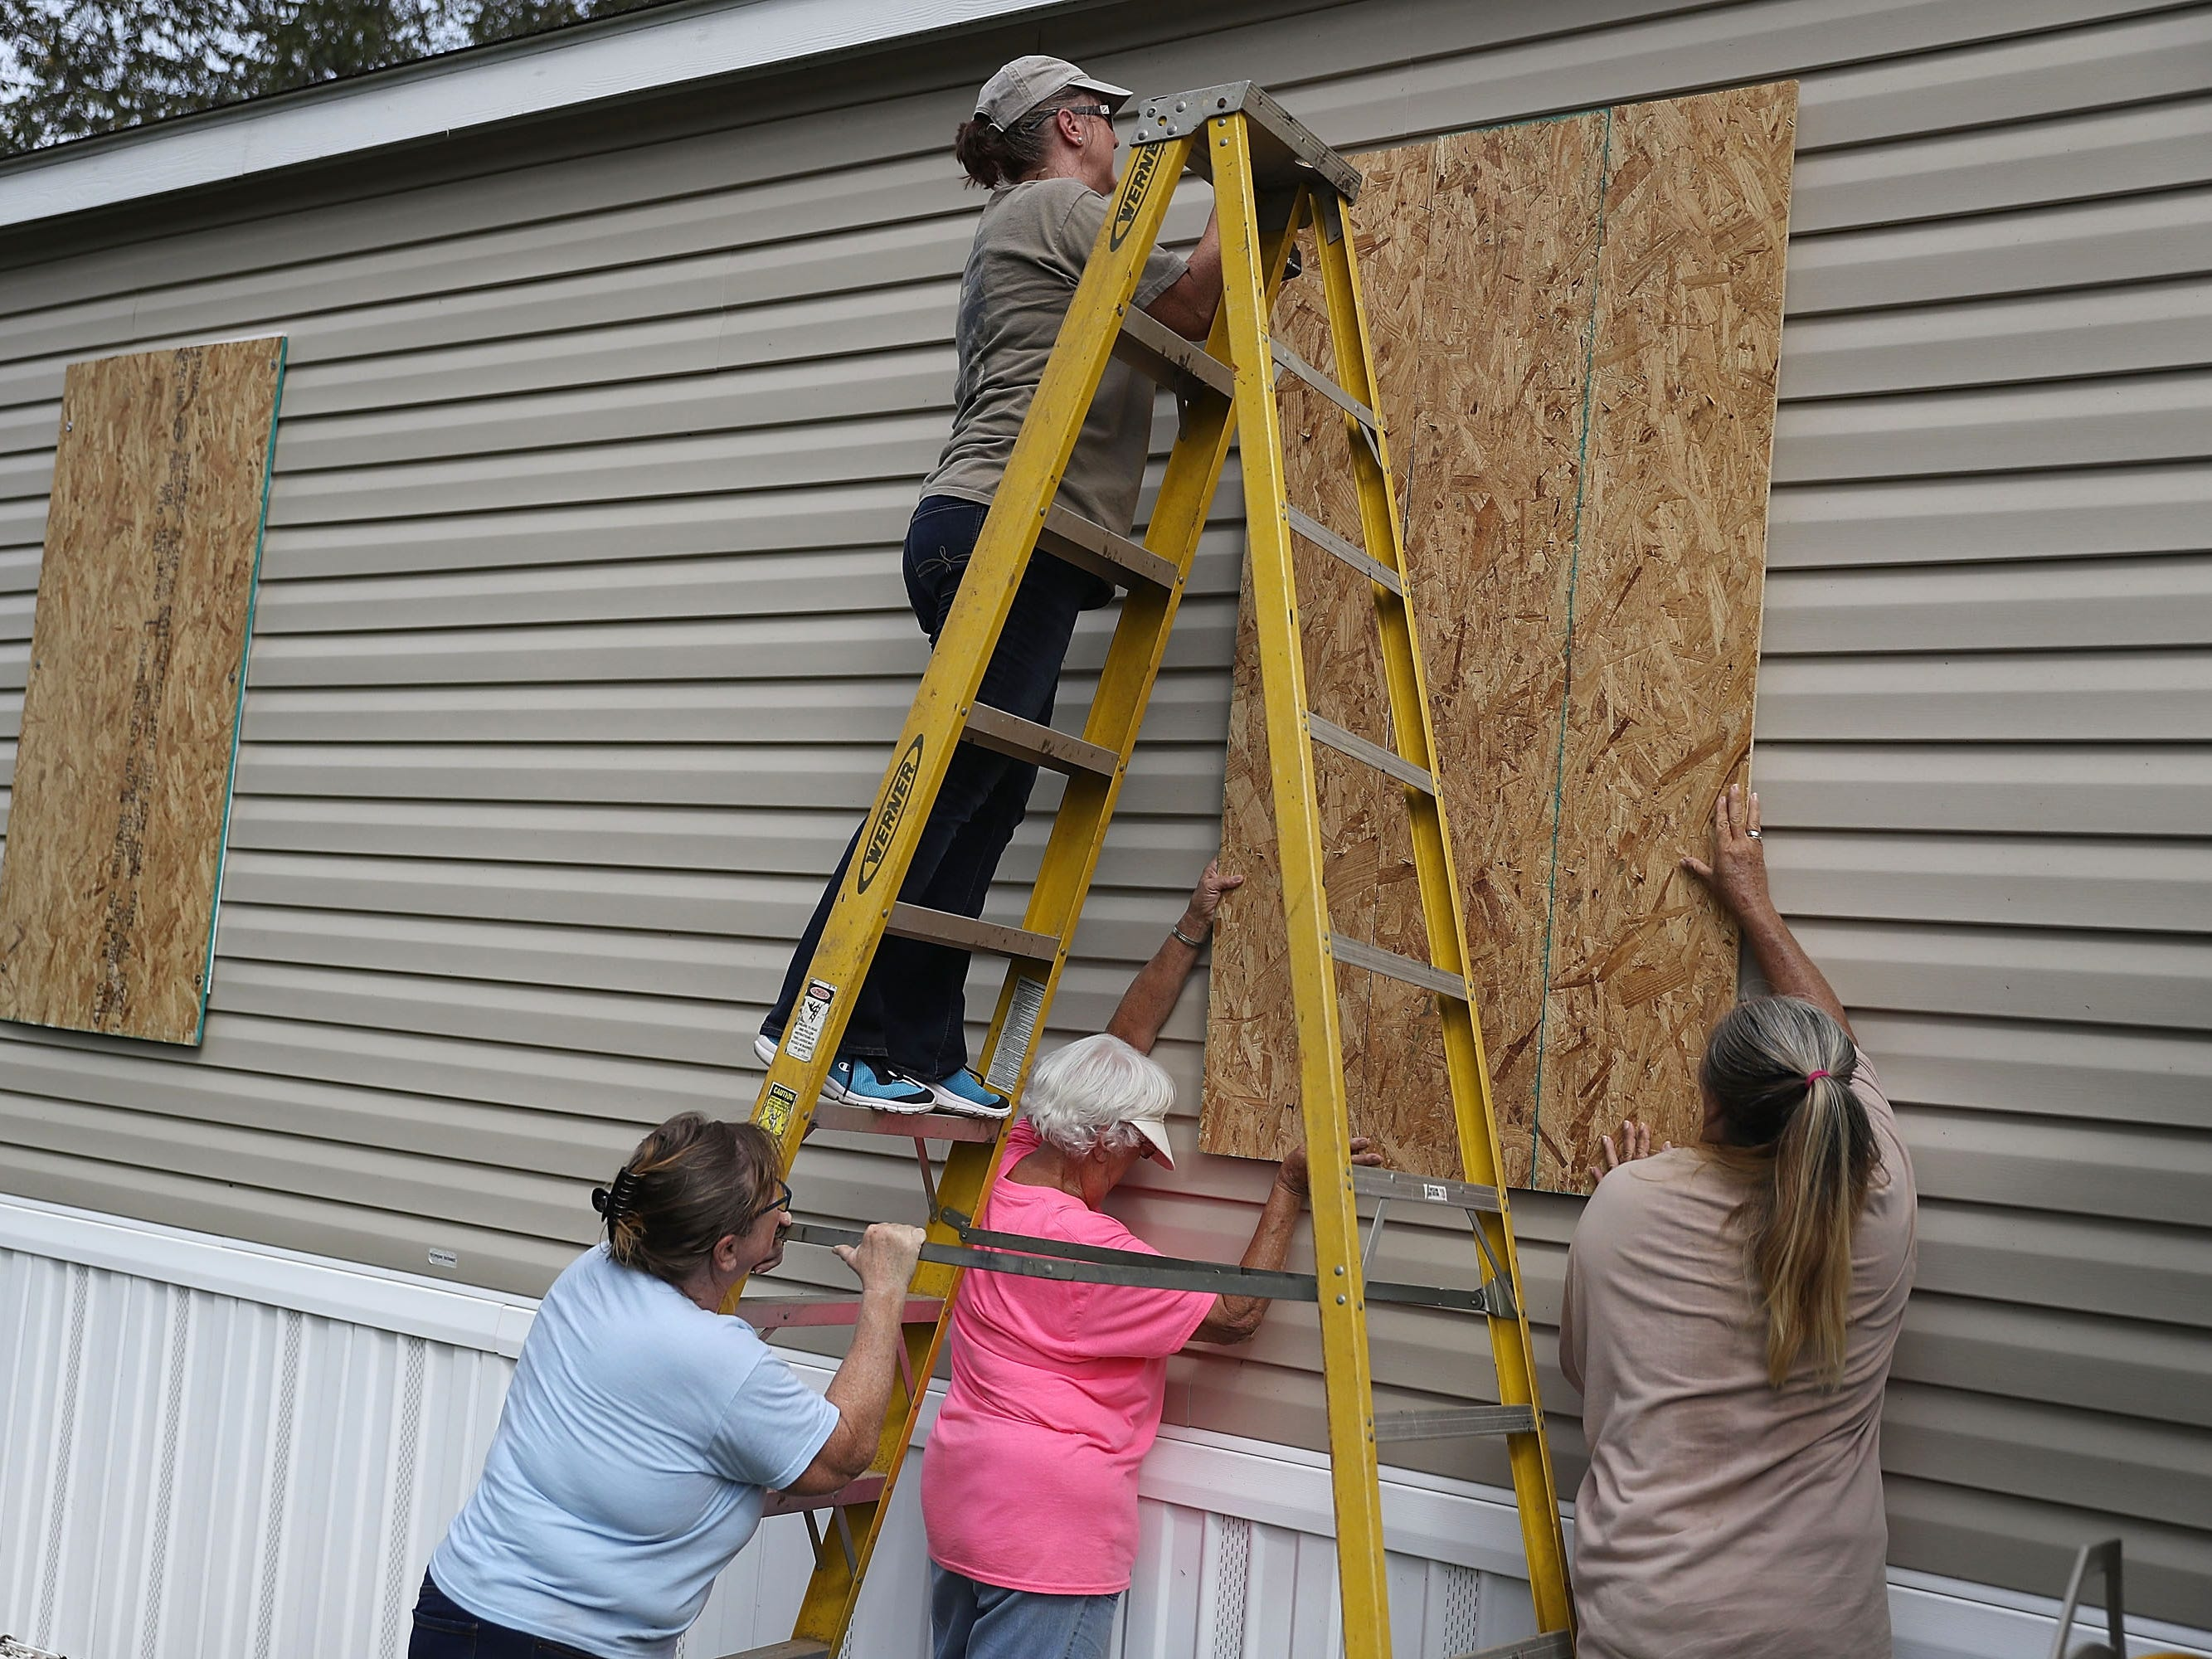 Linda Collins (on ladder) is assisted by friends as she places plywood over the windows of her home in preparation for the arrival of Hurricane Michael on Oct. 9, 2018 in Port St. Joe, Fla.